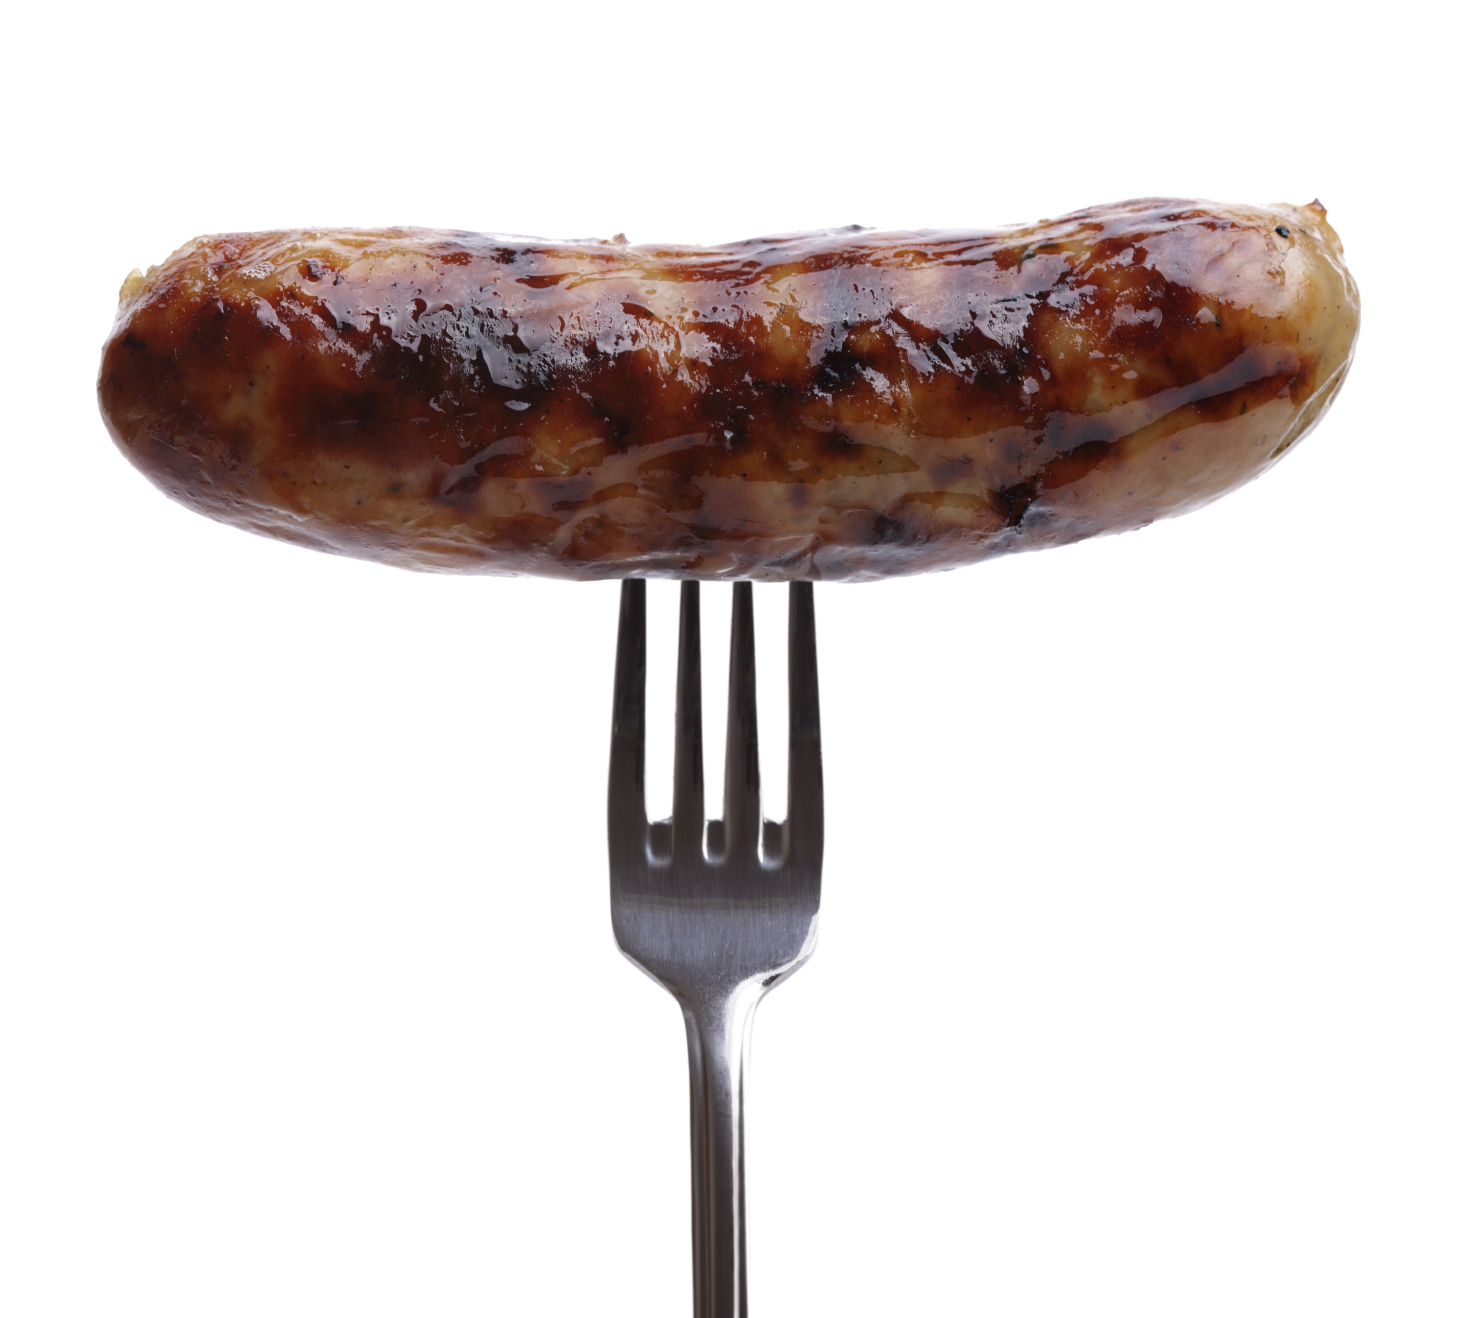 1457x1318px Sausages Browser Themes Desktop Wall Paper 1457x1318